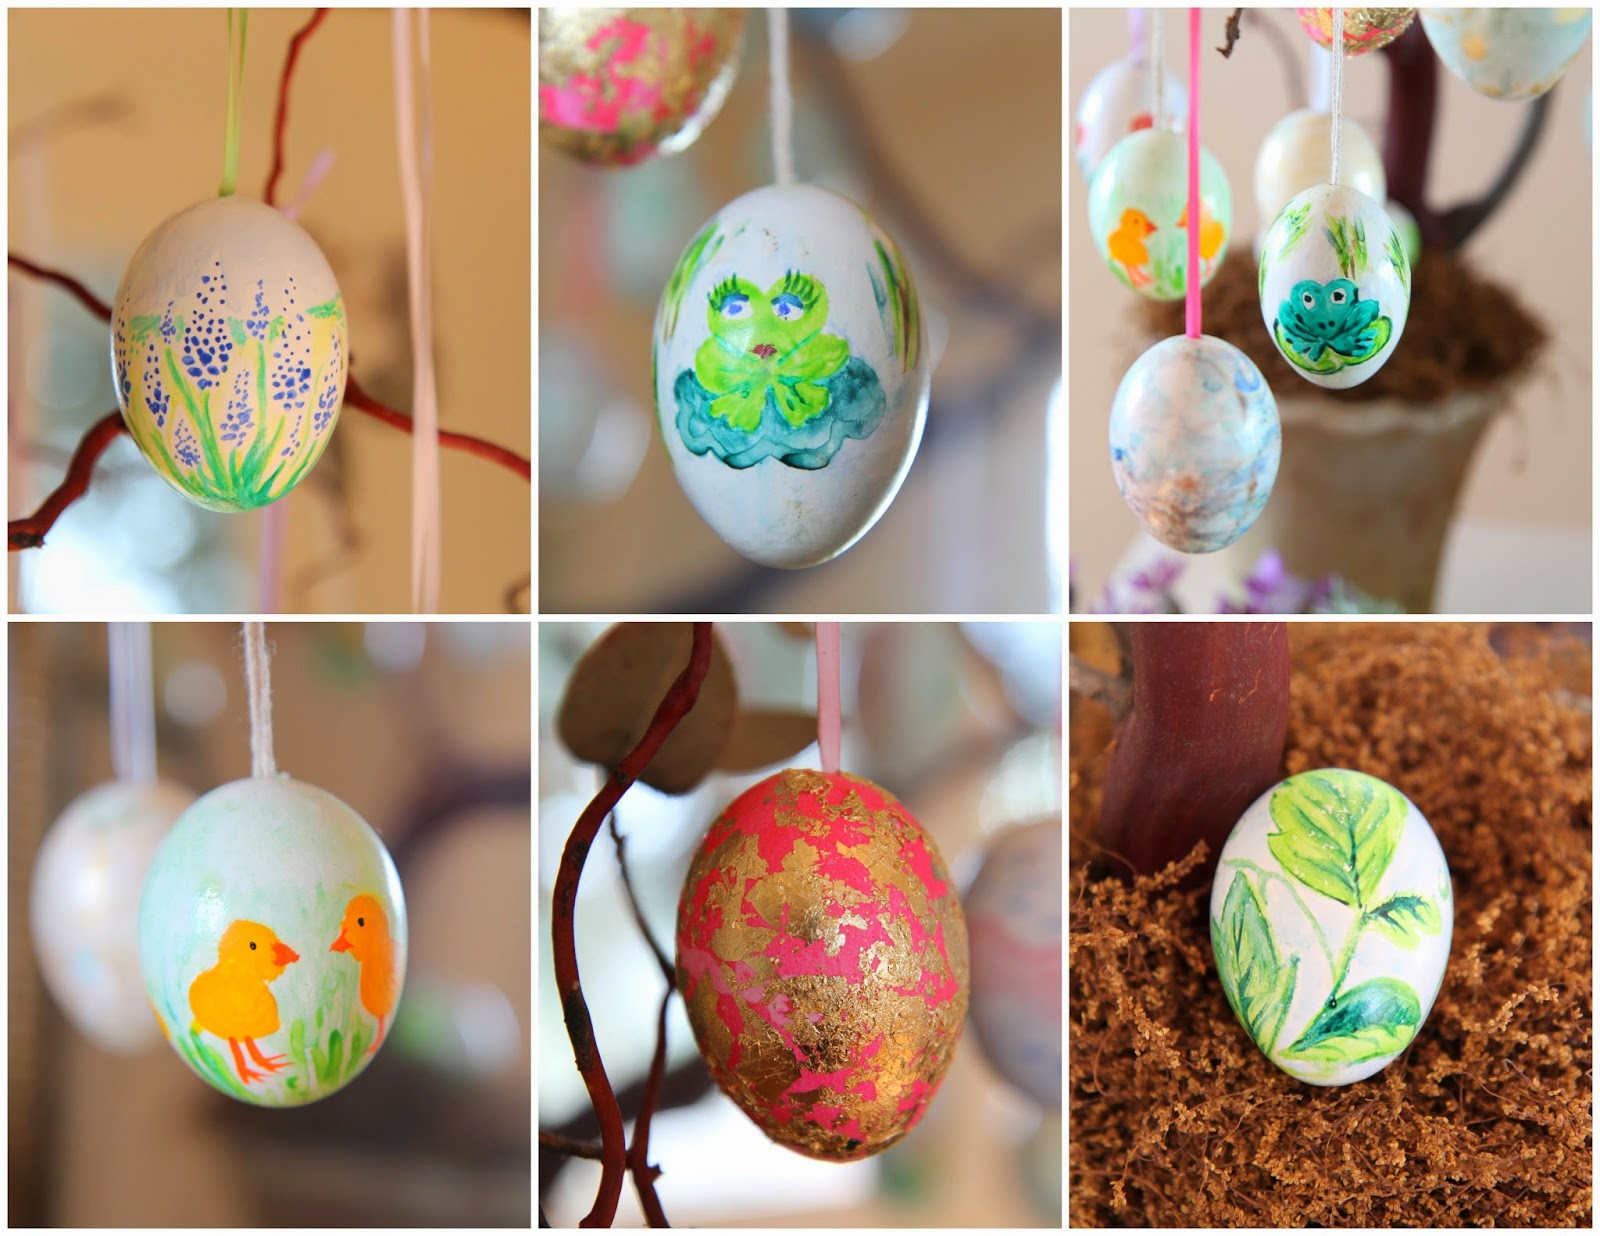 Bluebonnet, frog, goldleaf eggs; Easter Egg Tree; Nora's Nest